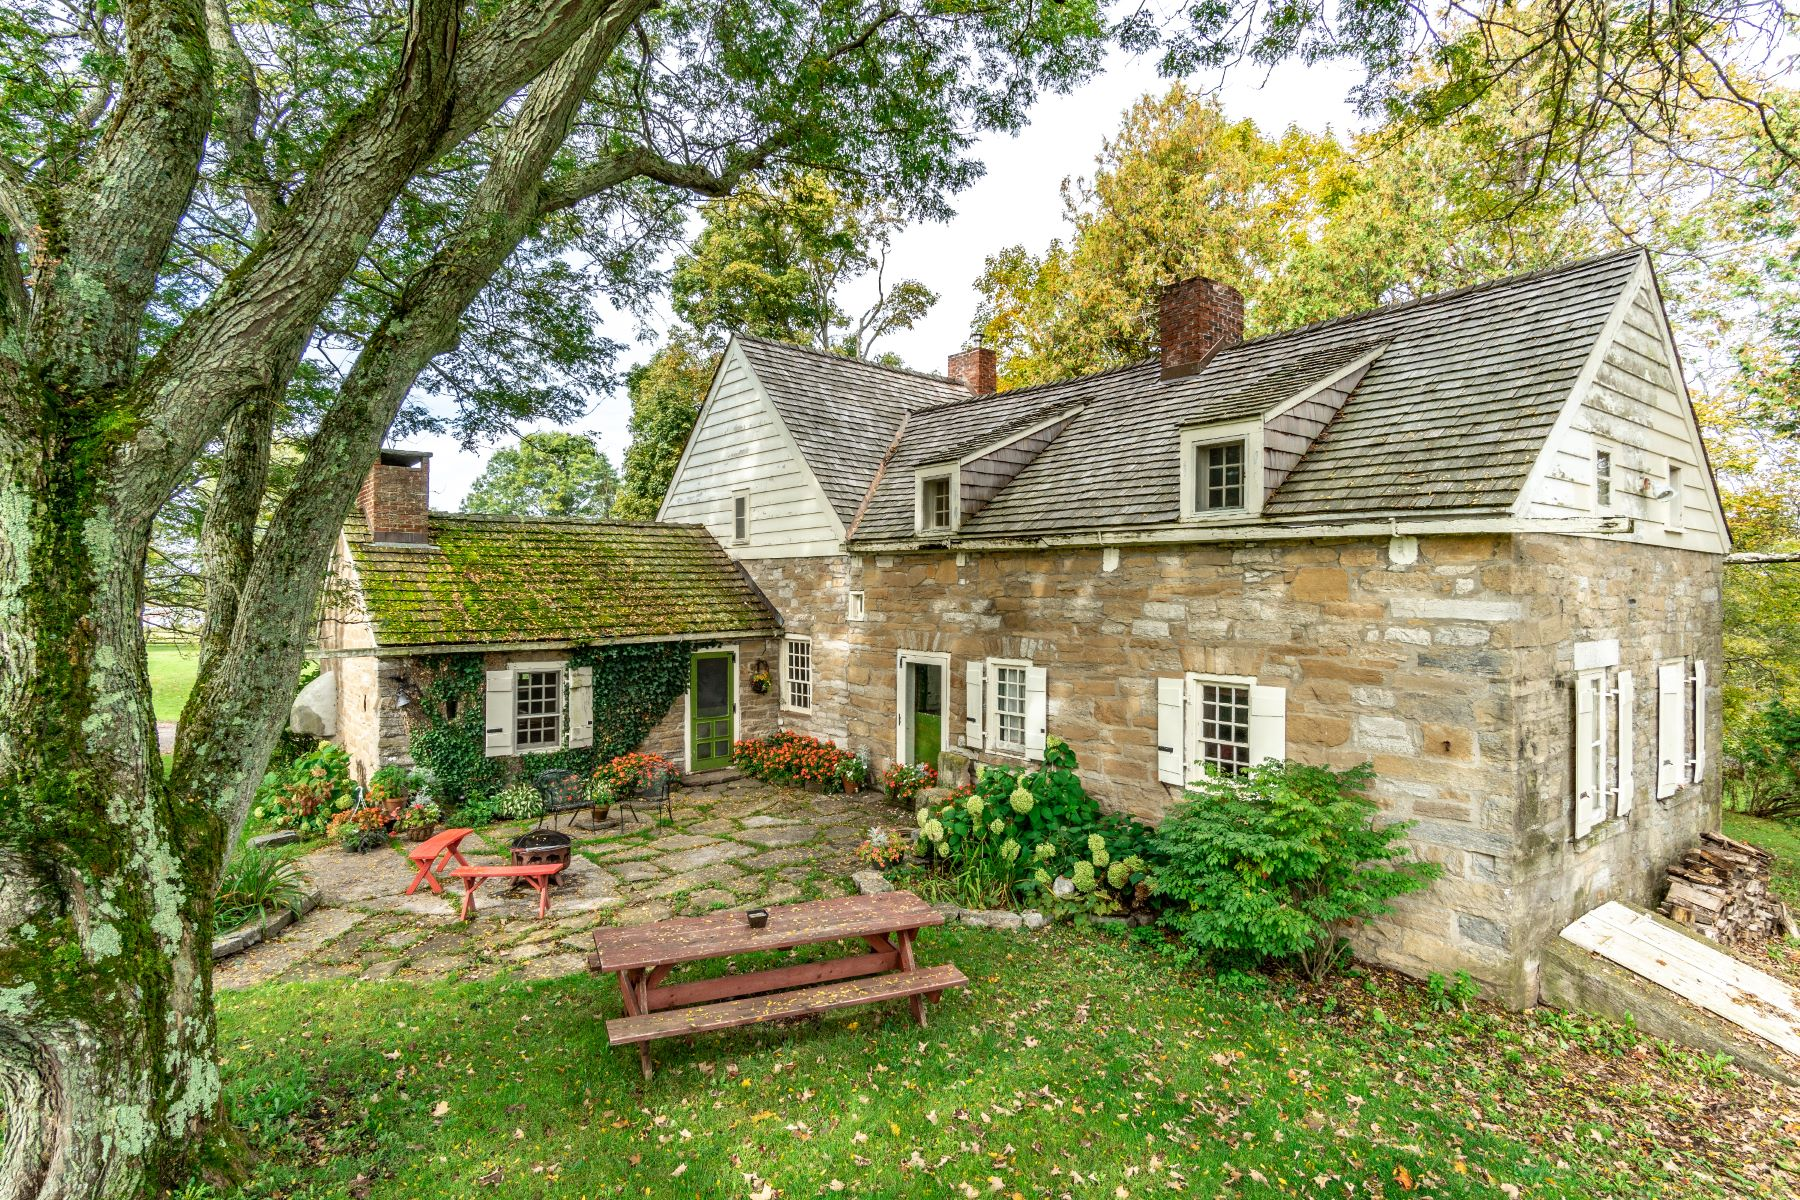 Single Family Homes for Sale at Idyllic Brower Farmstead Estate 844 Hickory Hill Rd Fort Plain, New York 13339 United States